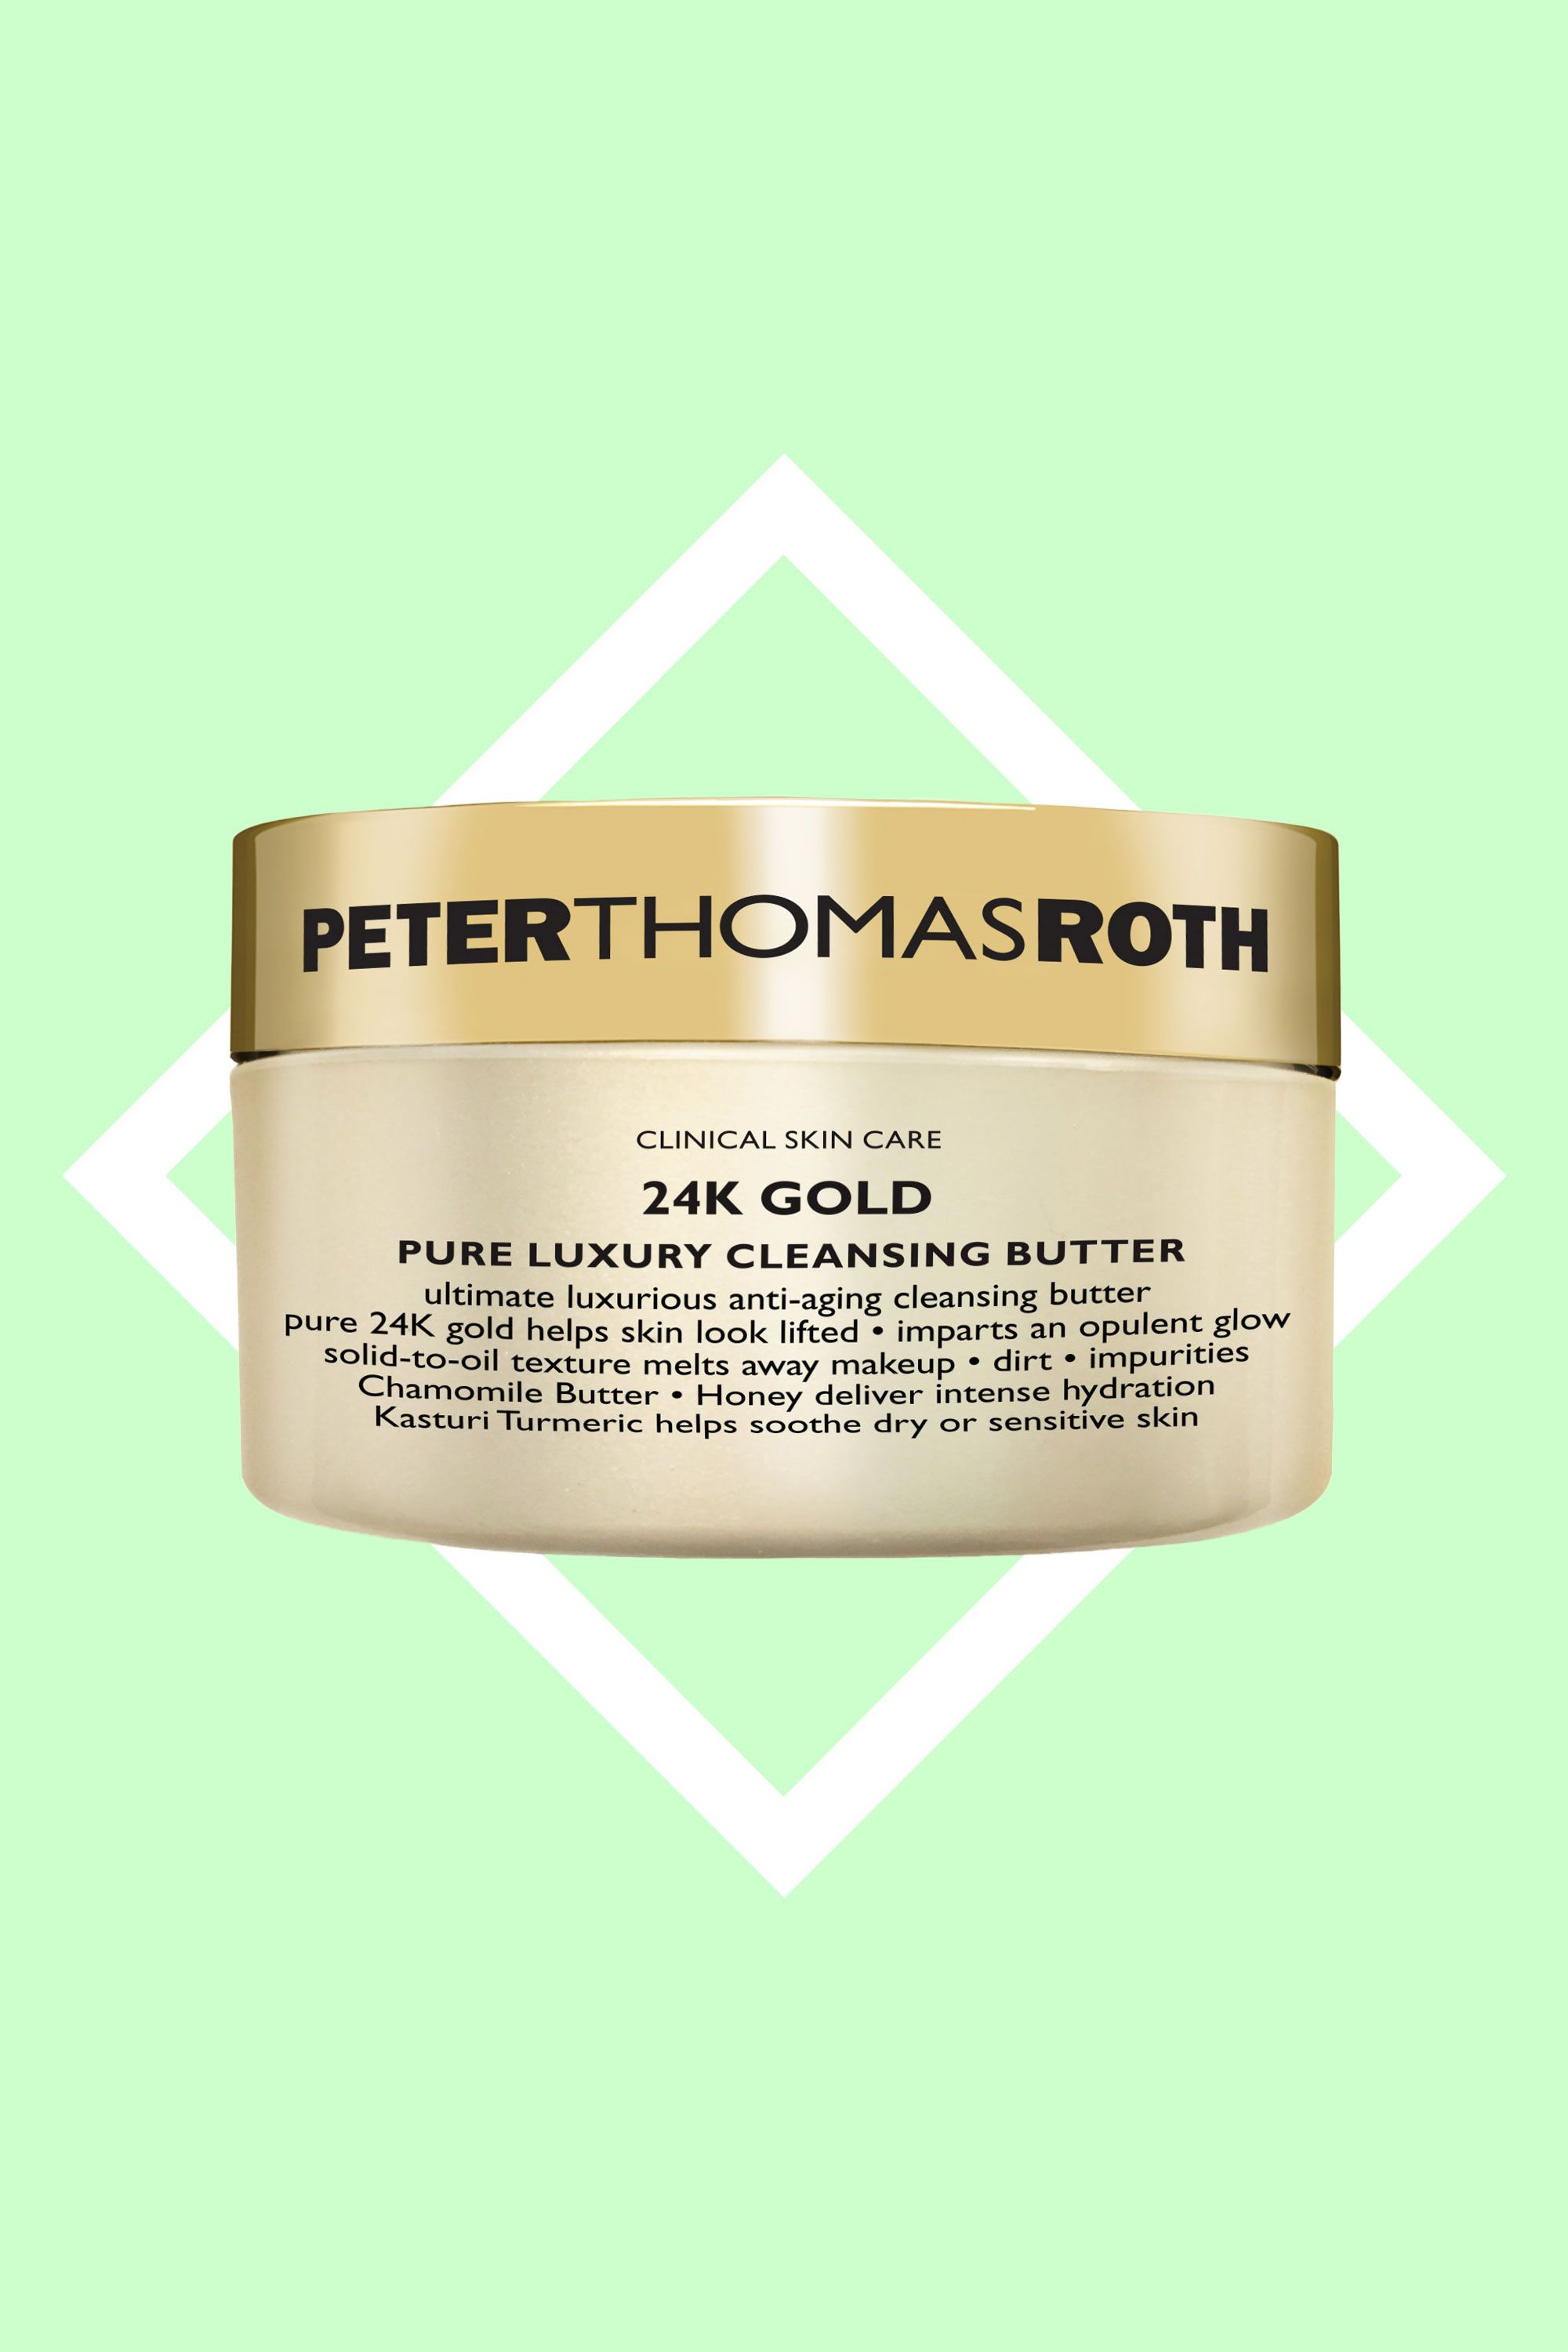 """<p>When your skin seems to feel parched, you definitely don't want to strip it when you're washing. This butter-y cleanser is laced with chamomile butter and honey to wash away makeup and dirt and hydrate at the same time. You may not even <em data-redactor-tag=""""em"""">need </em>to apply a moisturizer afterward.<a href=""""http://www.sephora.com/24k-gold-pure-luxury-cleansing-butter-P402689"""" target=""""_blank""""></a></p><p><a href=""""http://www.sephora.com/24k-gold-pure-luxury-cleansing-butter-P402689"""" target=""""_blank"""">Peter Thomas Roth 24K Gold Pure Luxury Cleansing Balm</a>, $55</p>"""